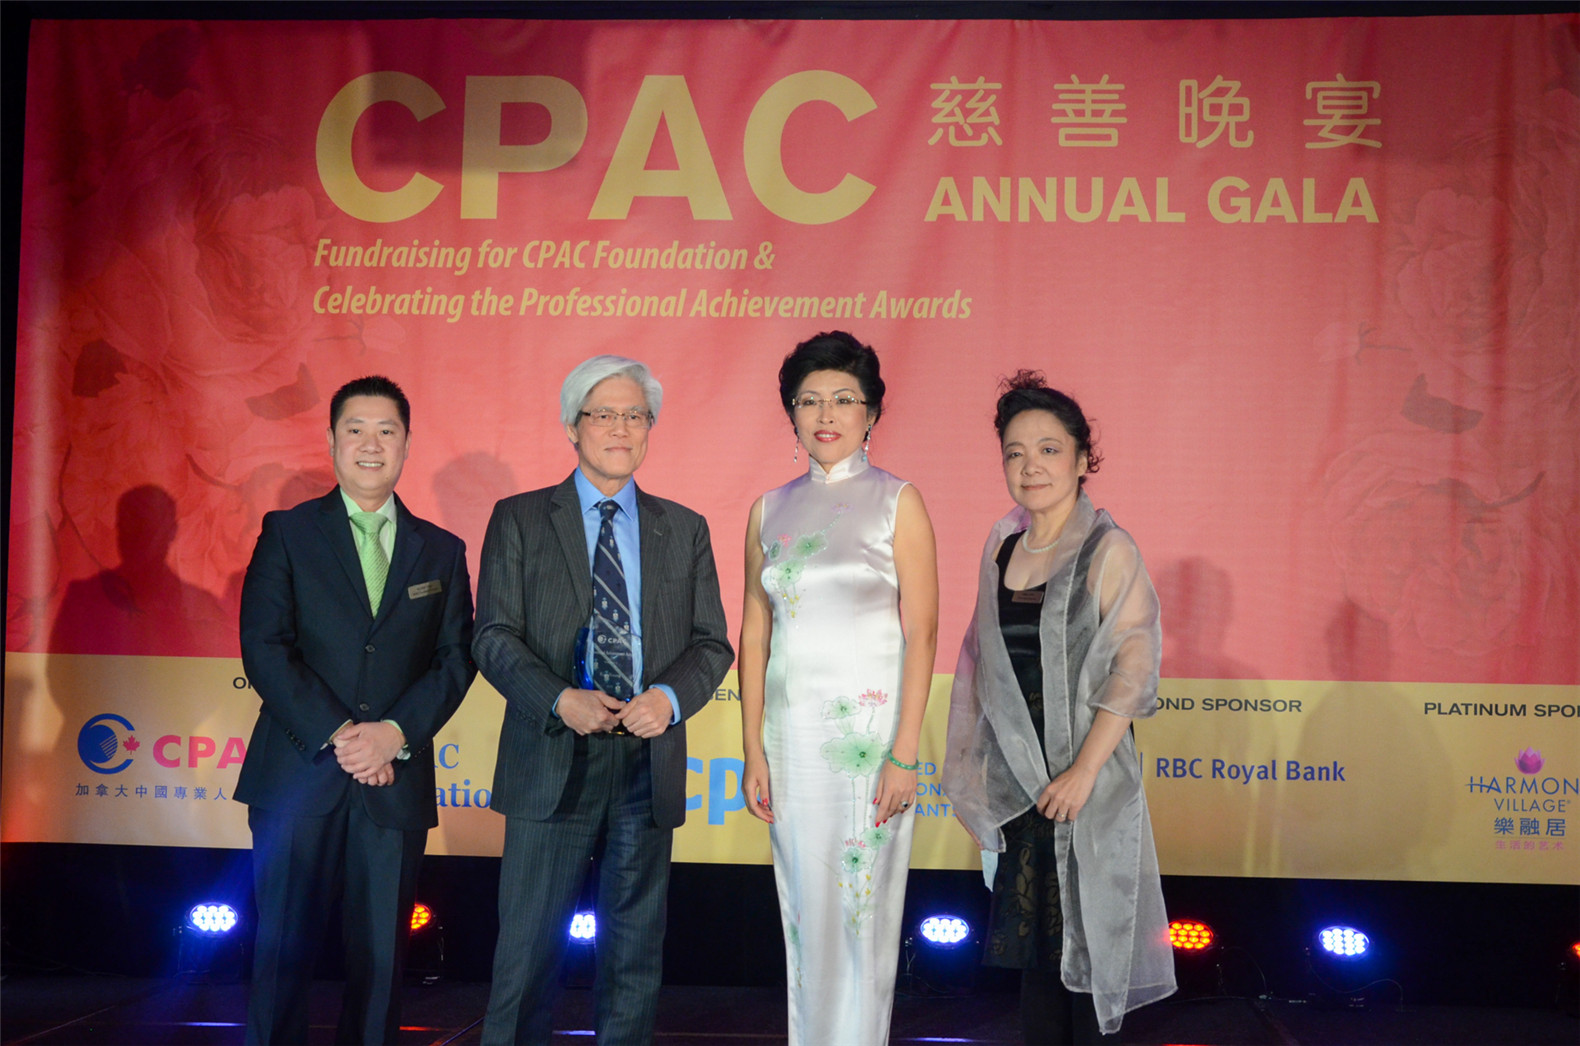 cpac gala raises funds and celebrates immigrant success cpac president margaret yang right 2 presents 2015 cpac professional achievement award to dr